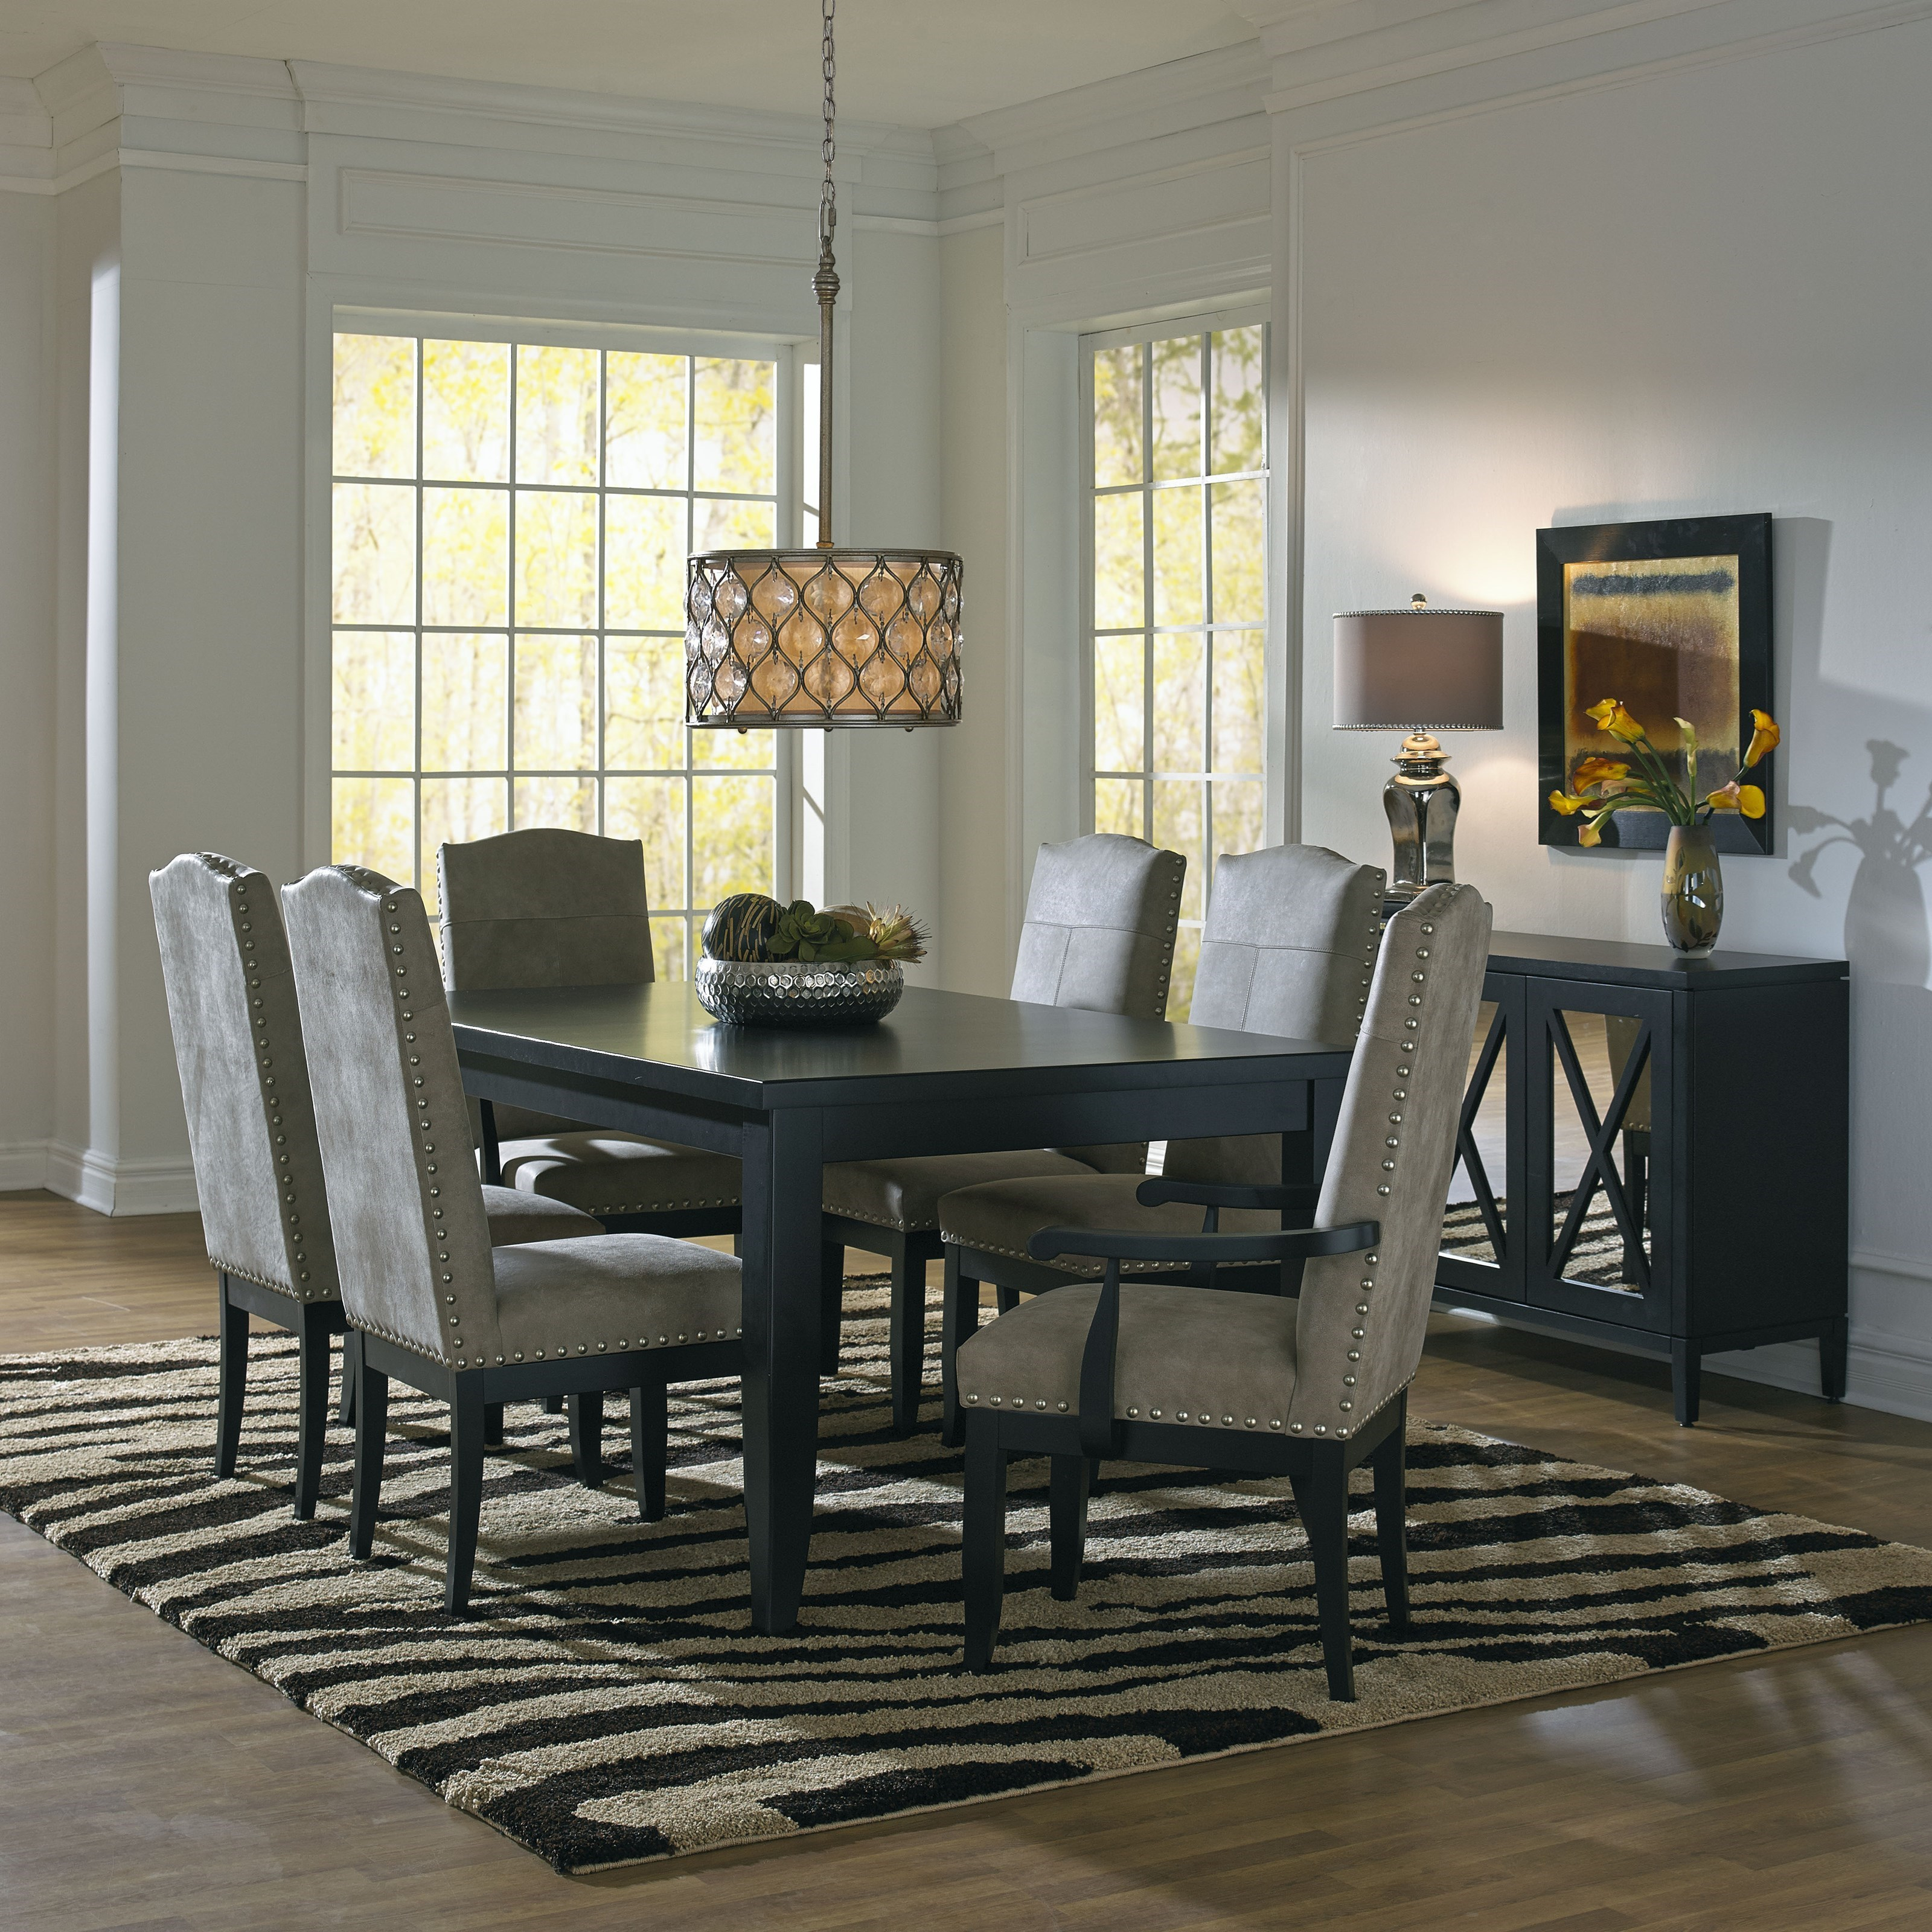 Custom Dining Dining Room Group by Canadel at Dinette Depot